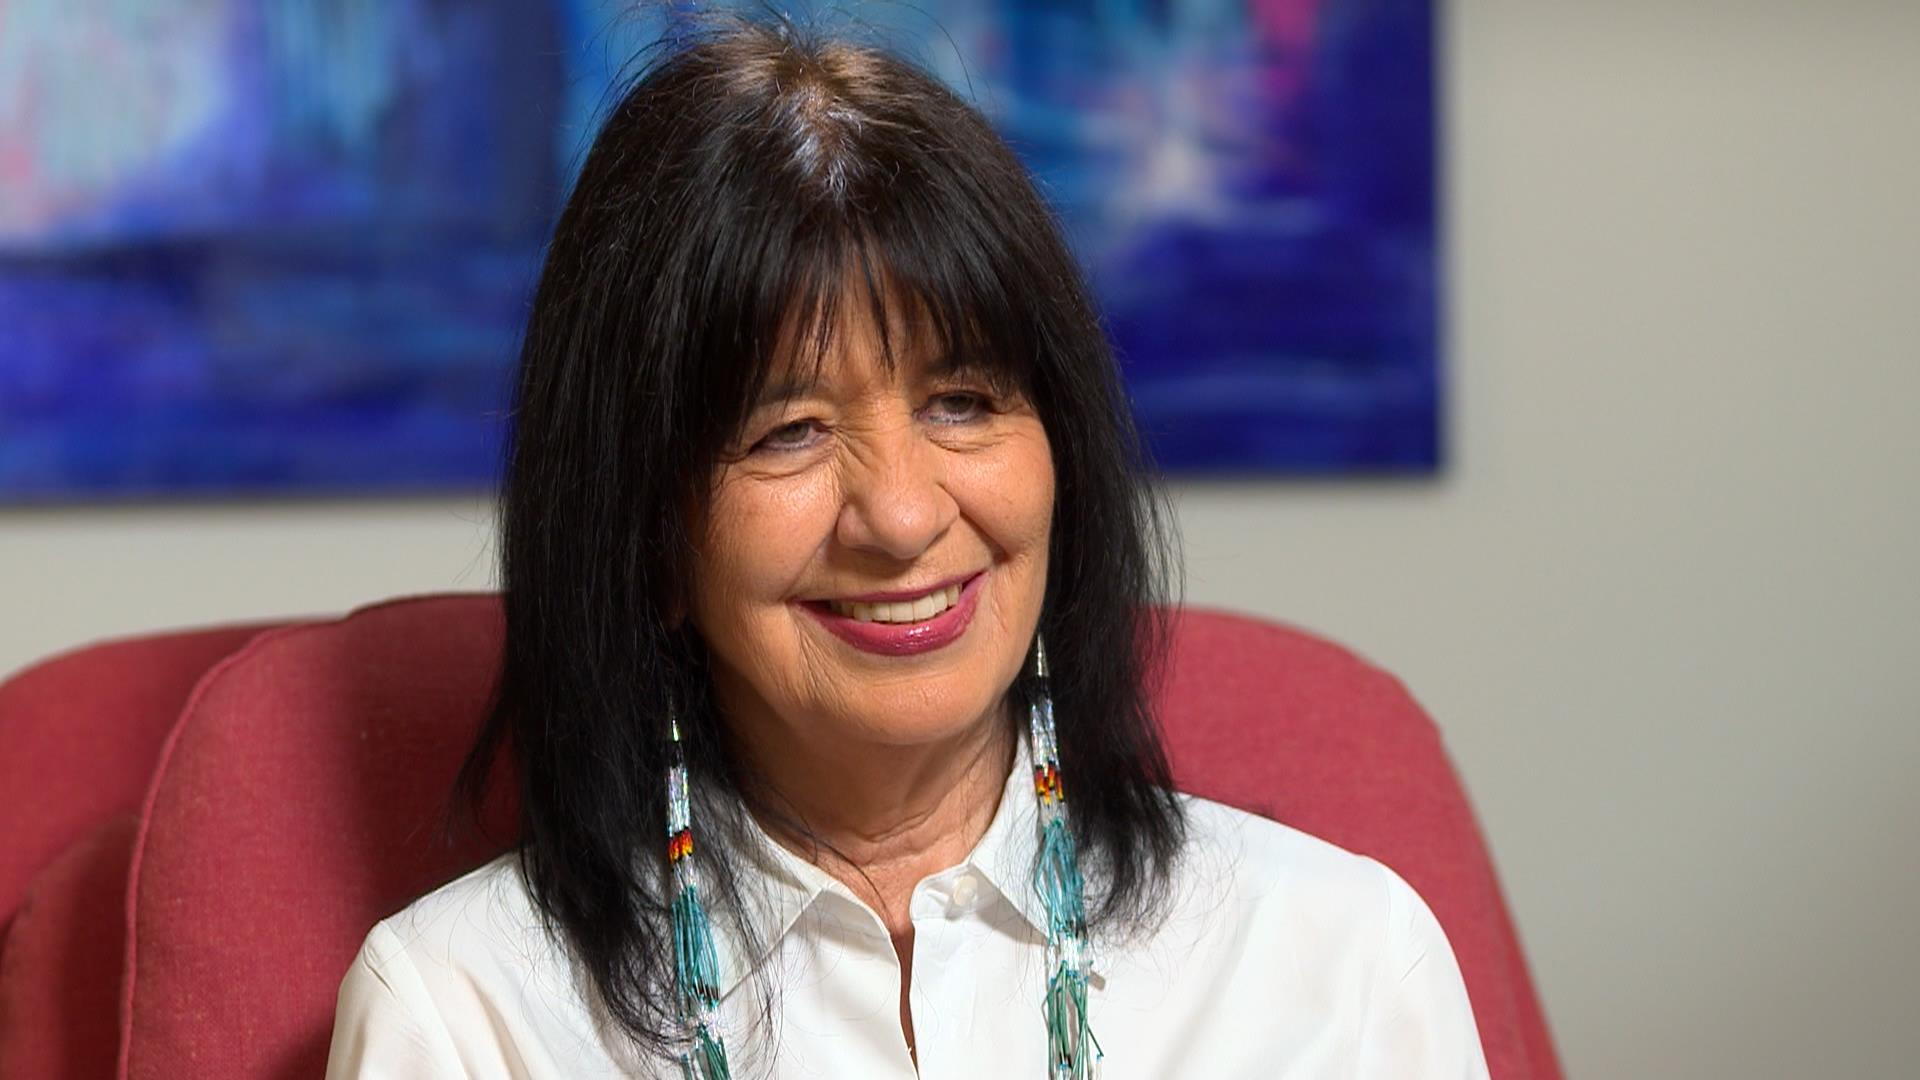 Meet the United States' first Native American poet laureate